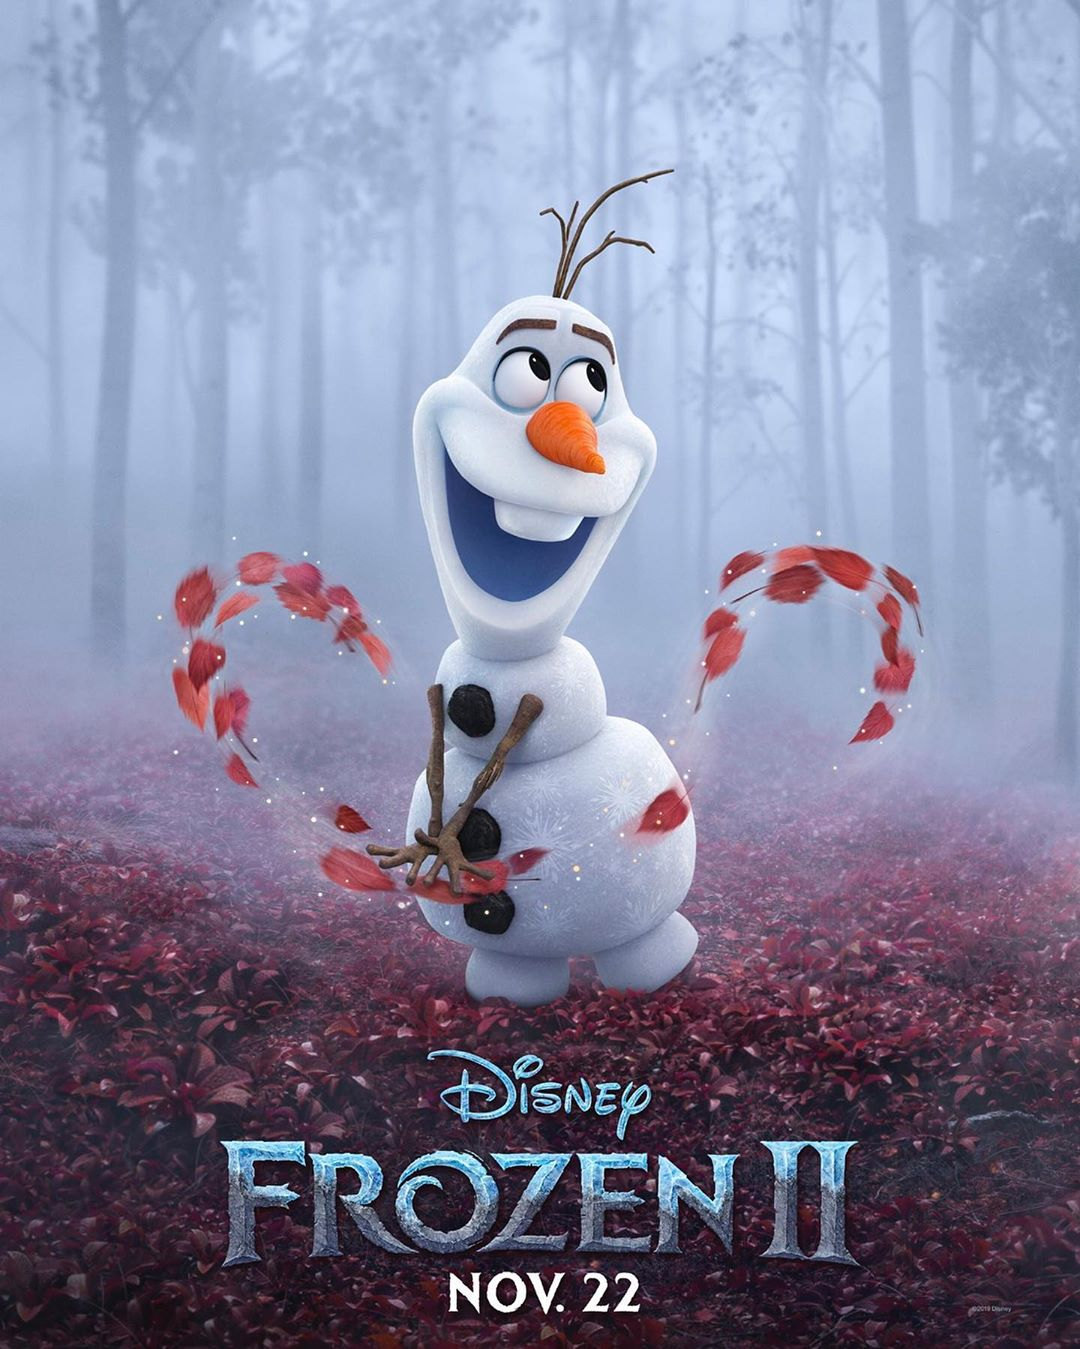 Frozen 2 Character Poster - Olaf